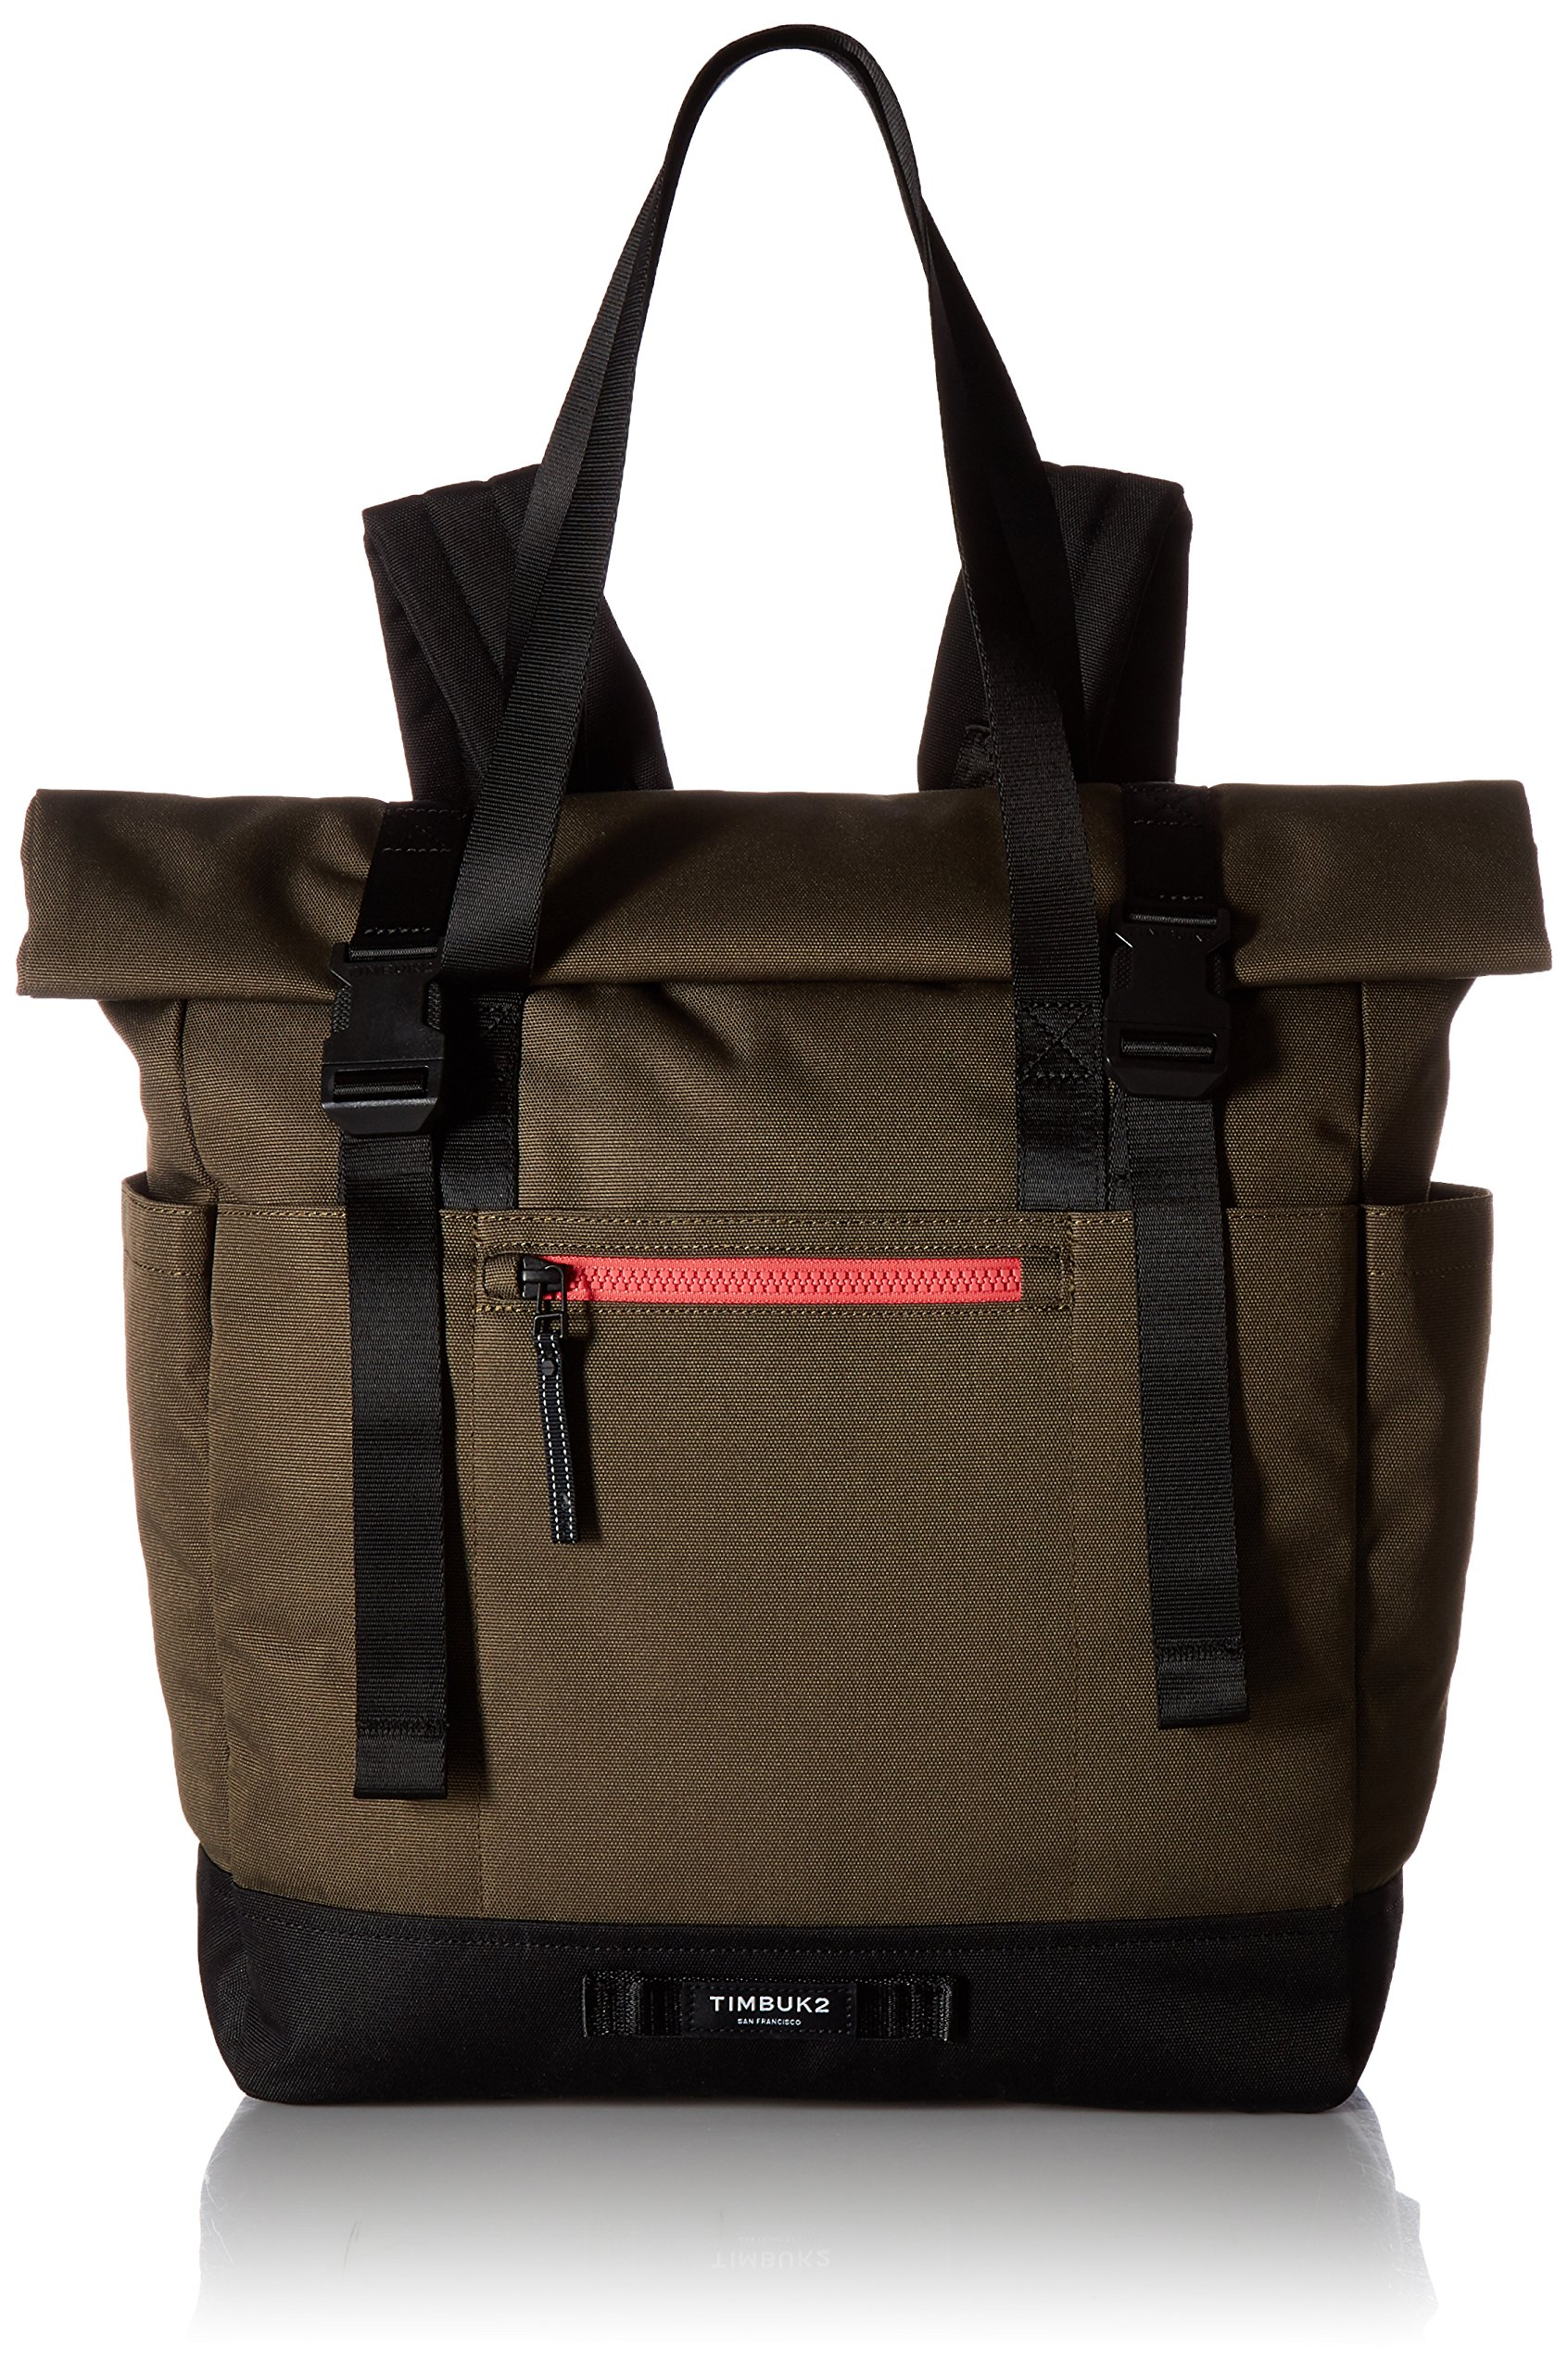 Timbuk2 Forge Tote, Rebel, OS, Rebel, One Size by Timbuk2